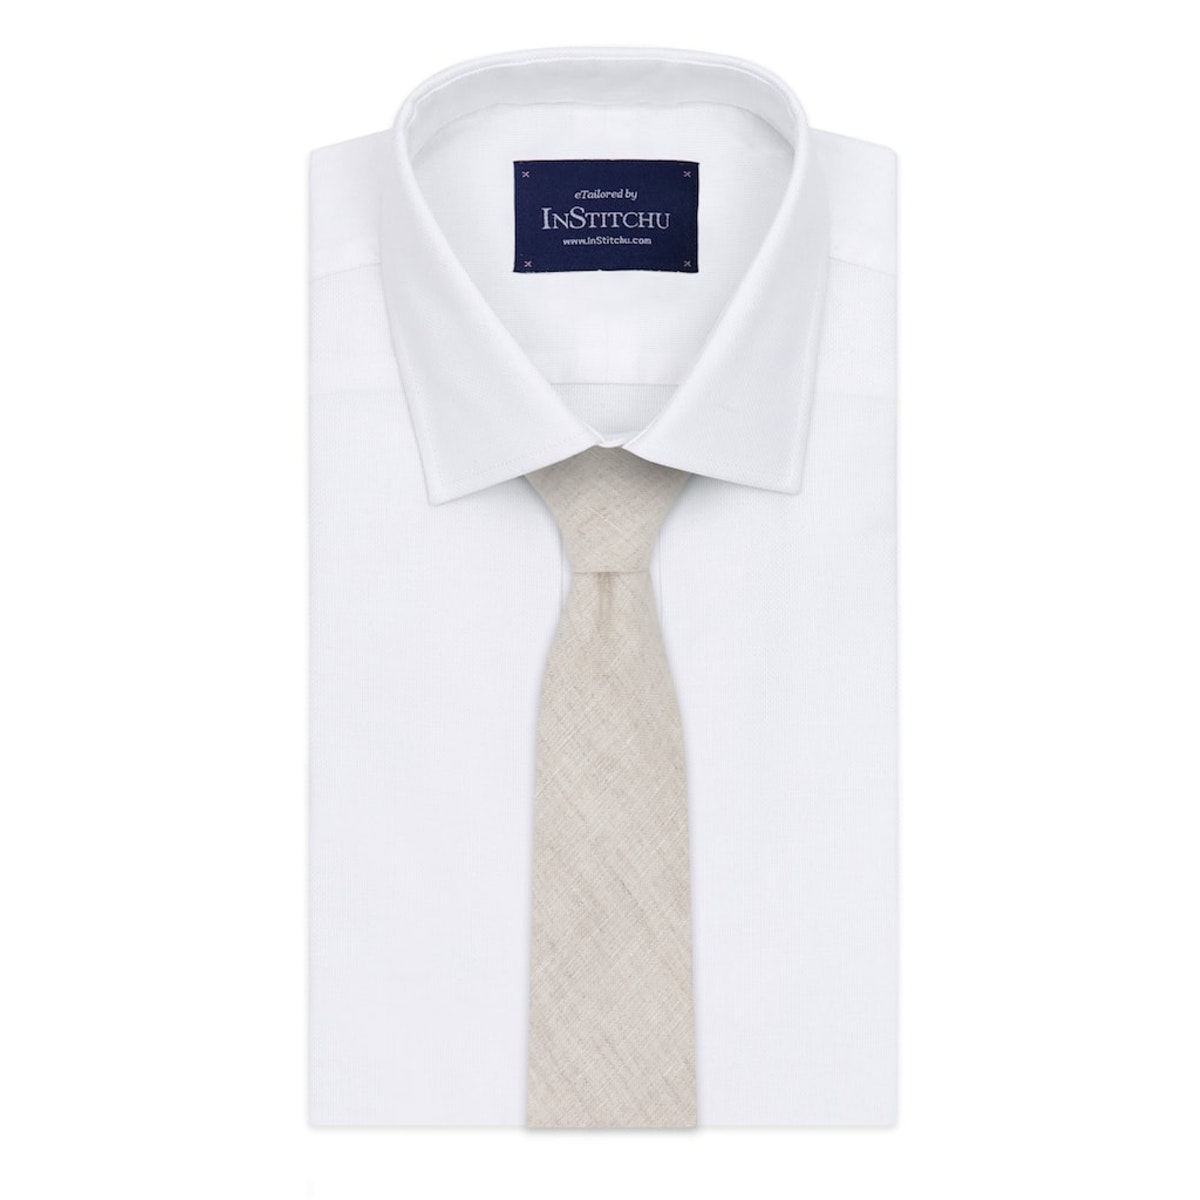 InStitchu Essentials Accessories Tie Harbord Light Beige Cotton and Linen Tie